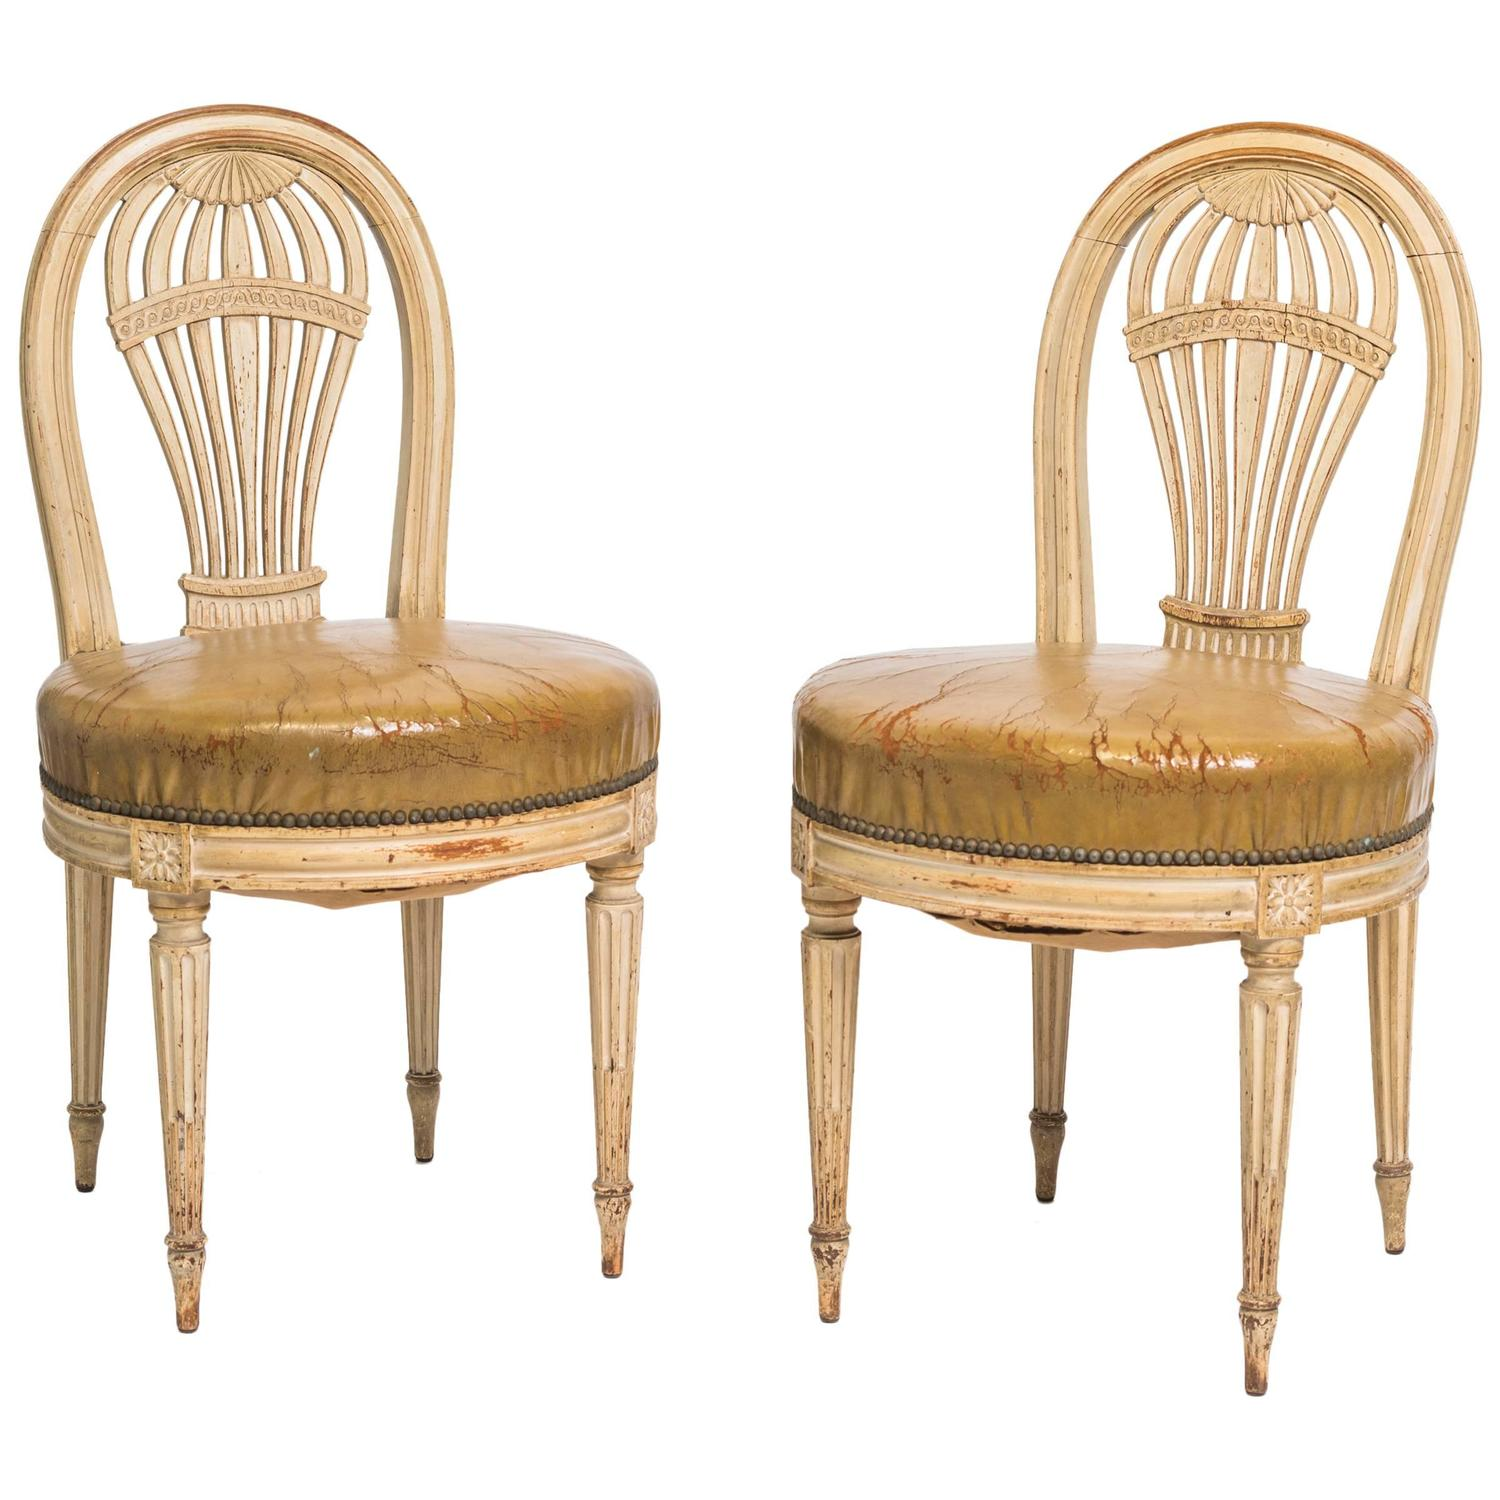 Pair Of 1920s French Hot Air Balloon Side Chairs